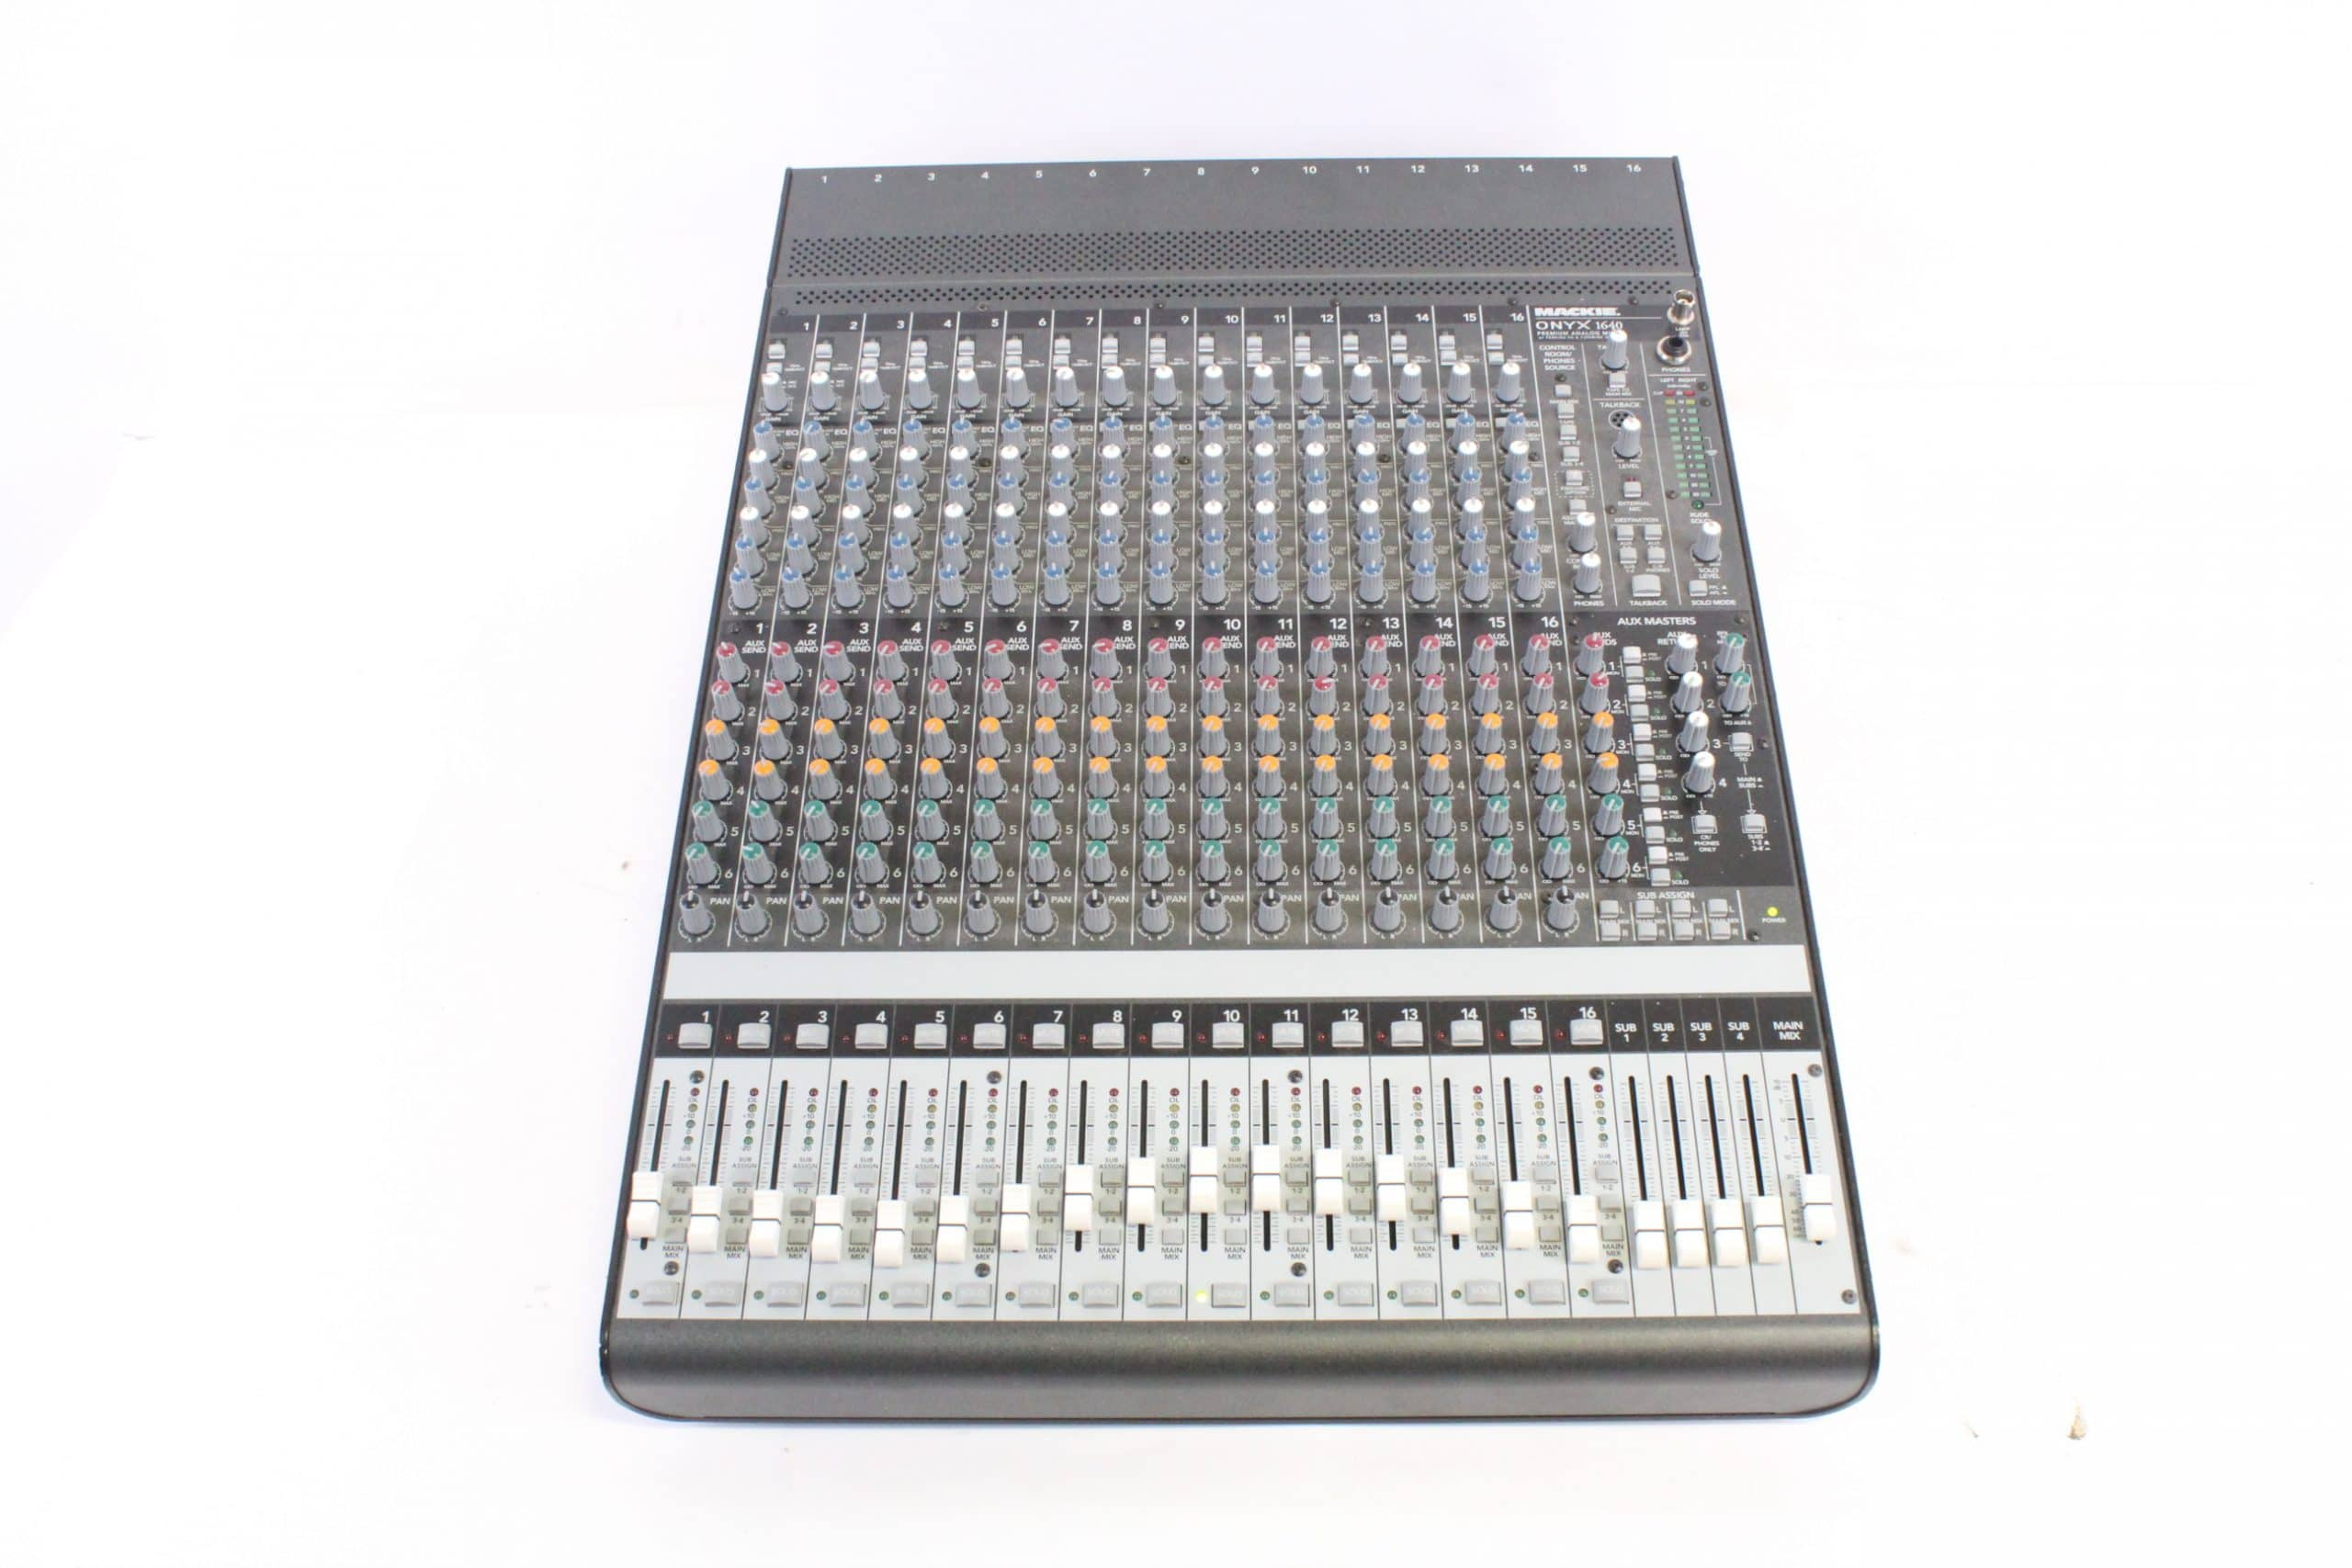 mackie-onyx-1640-16-channel-analog-mixer-with-perkins-eq-firewire-option-in-soft-case MAIN